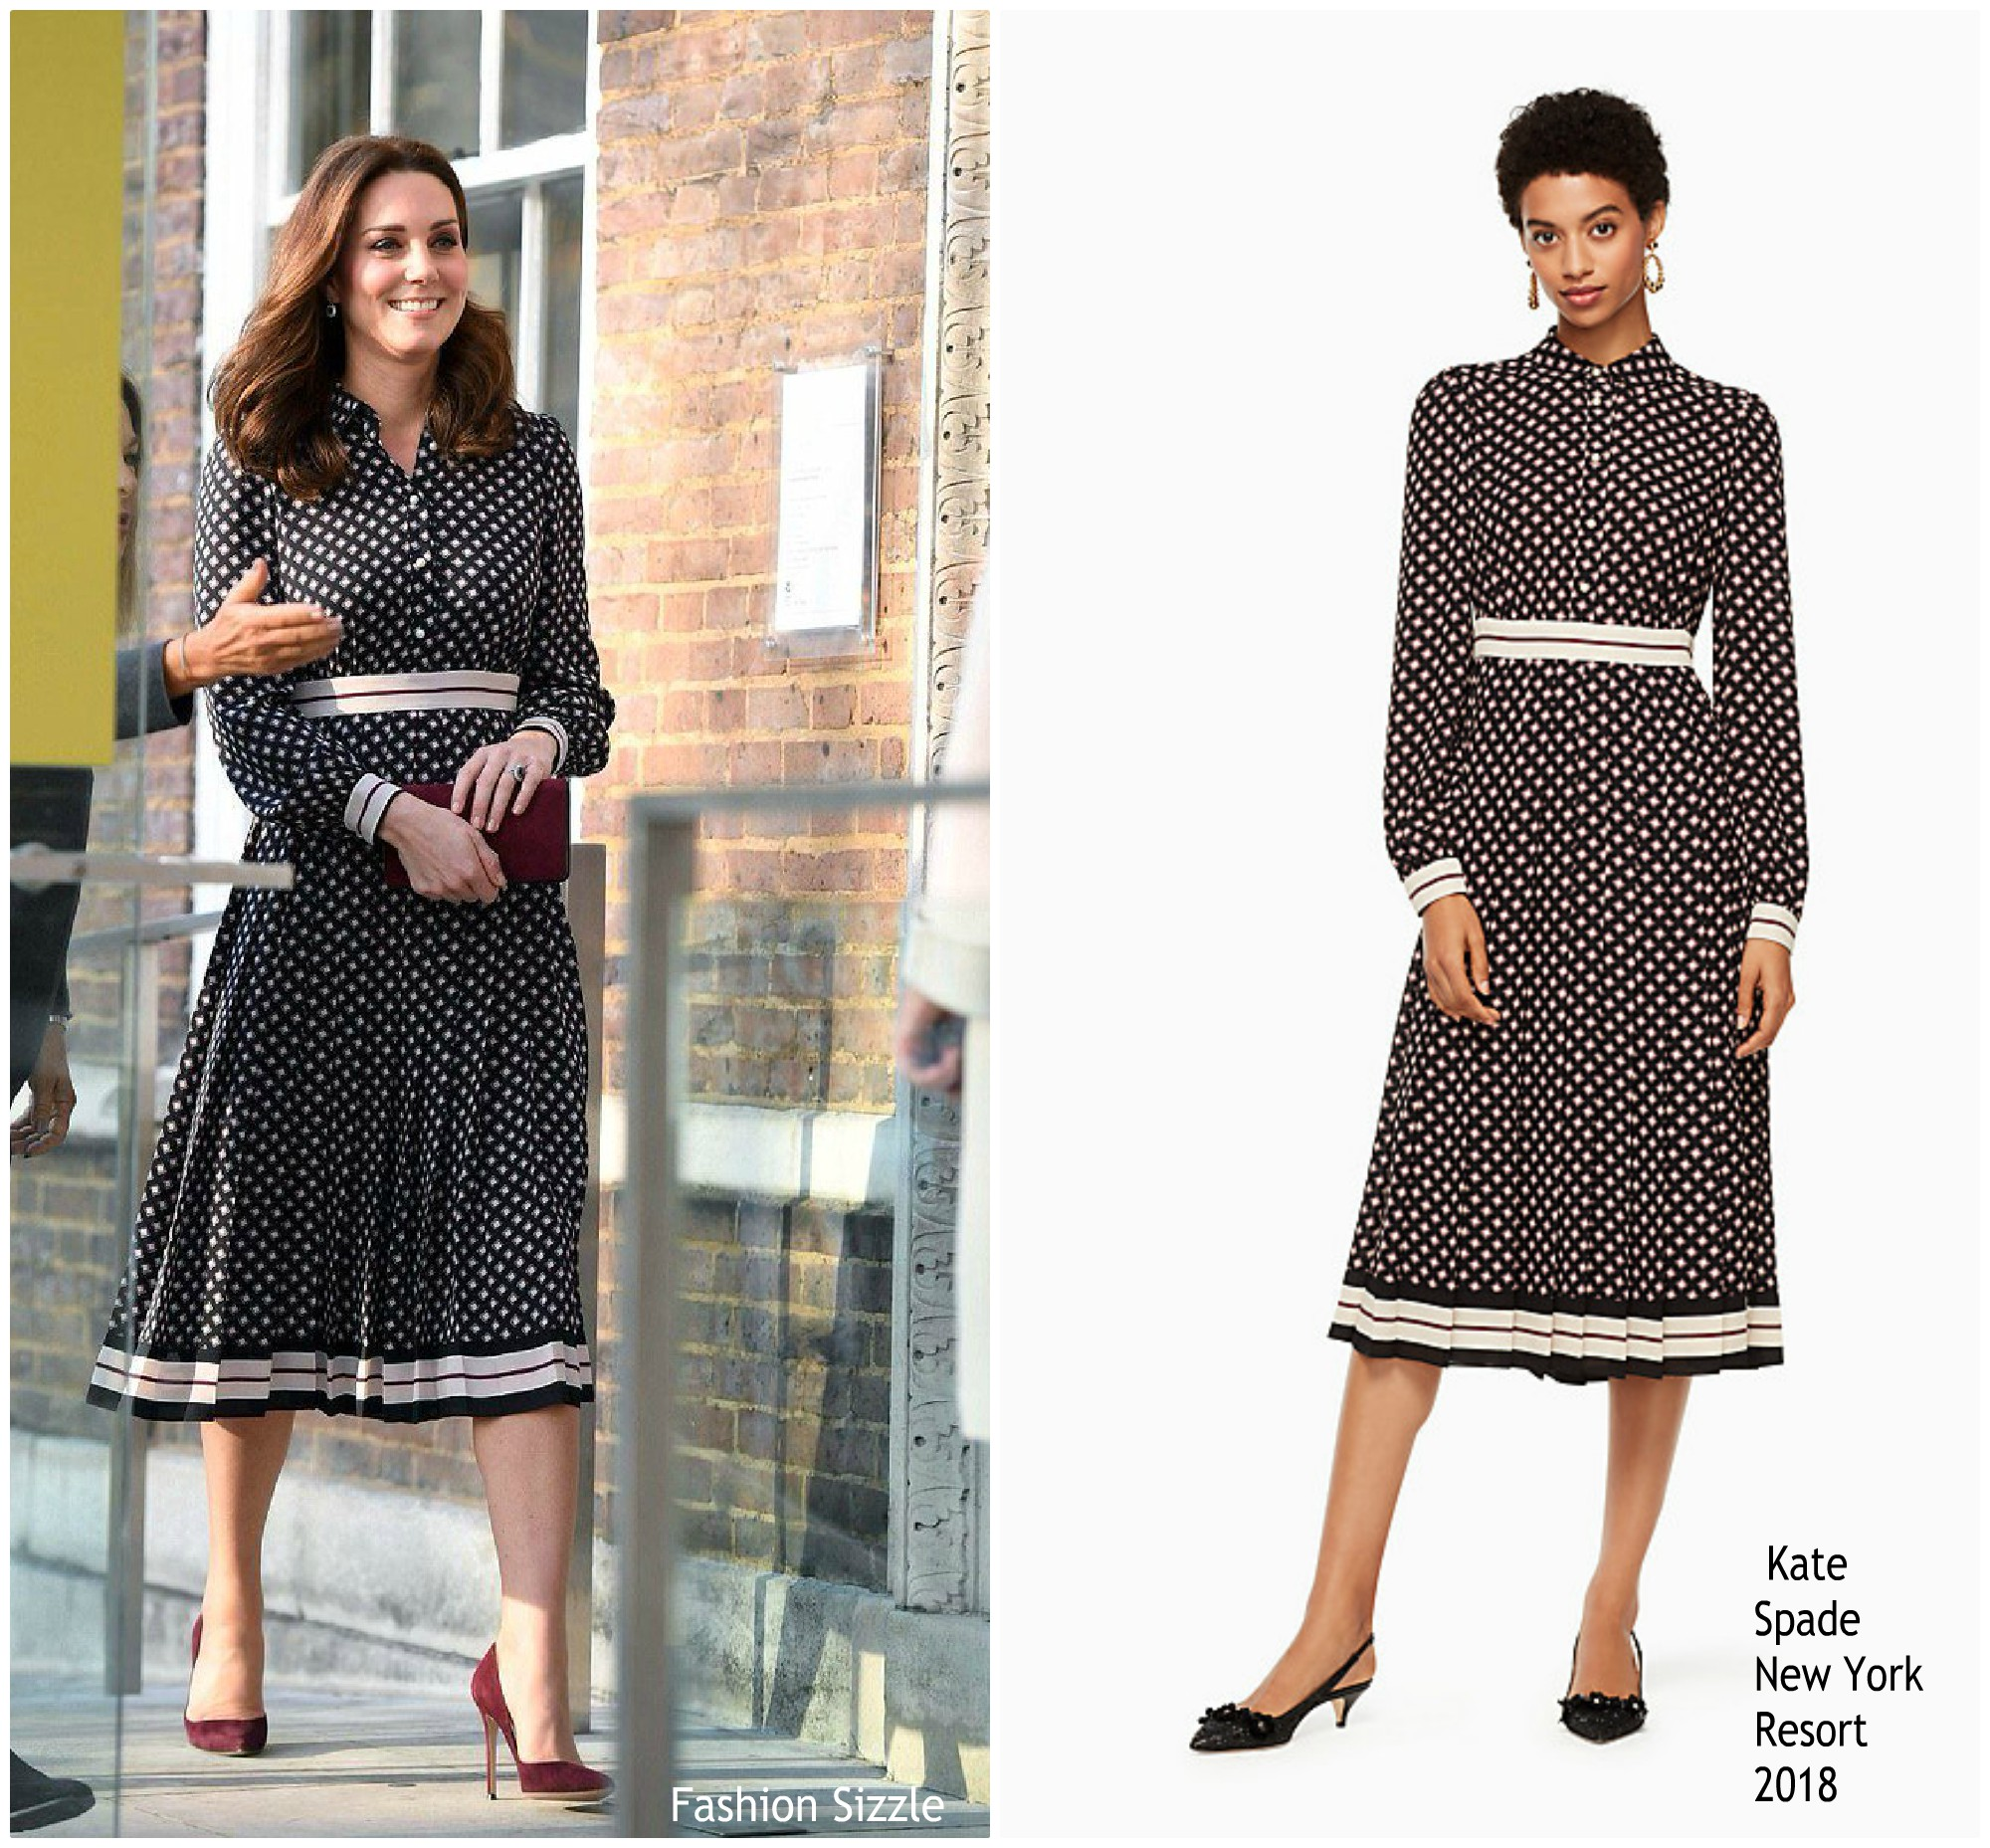 kate-middleton-in-kate-spade-new-york-foundling-museum-in-london